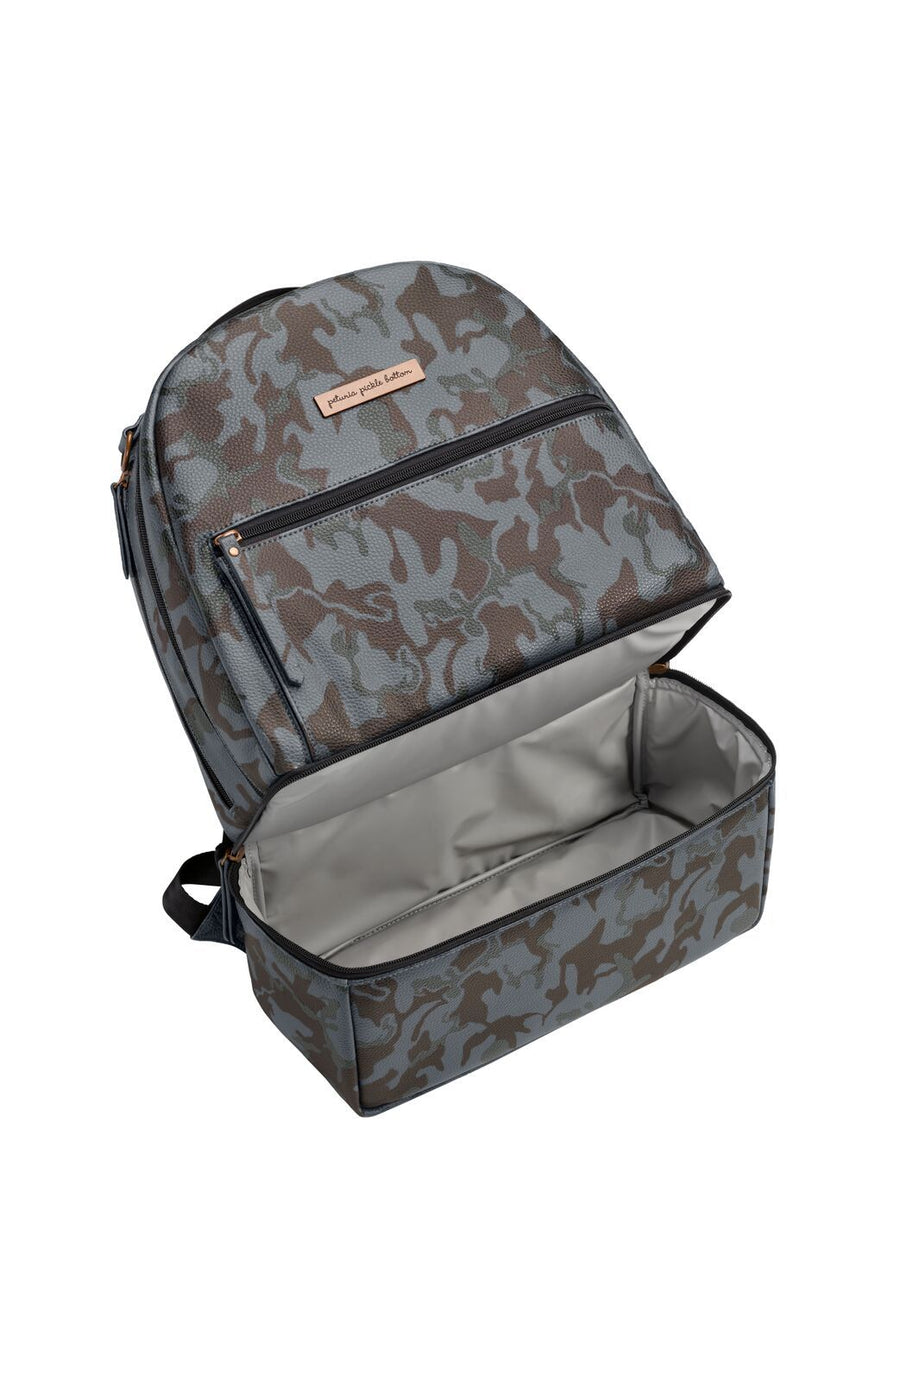 THE AXIS BACKPACK IN CAMO| Petunia Pickle Bottom